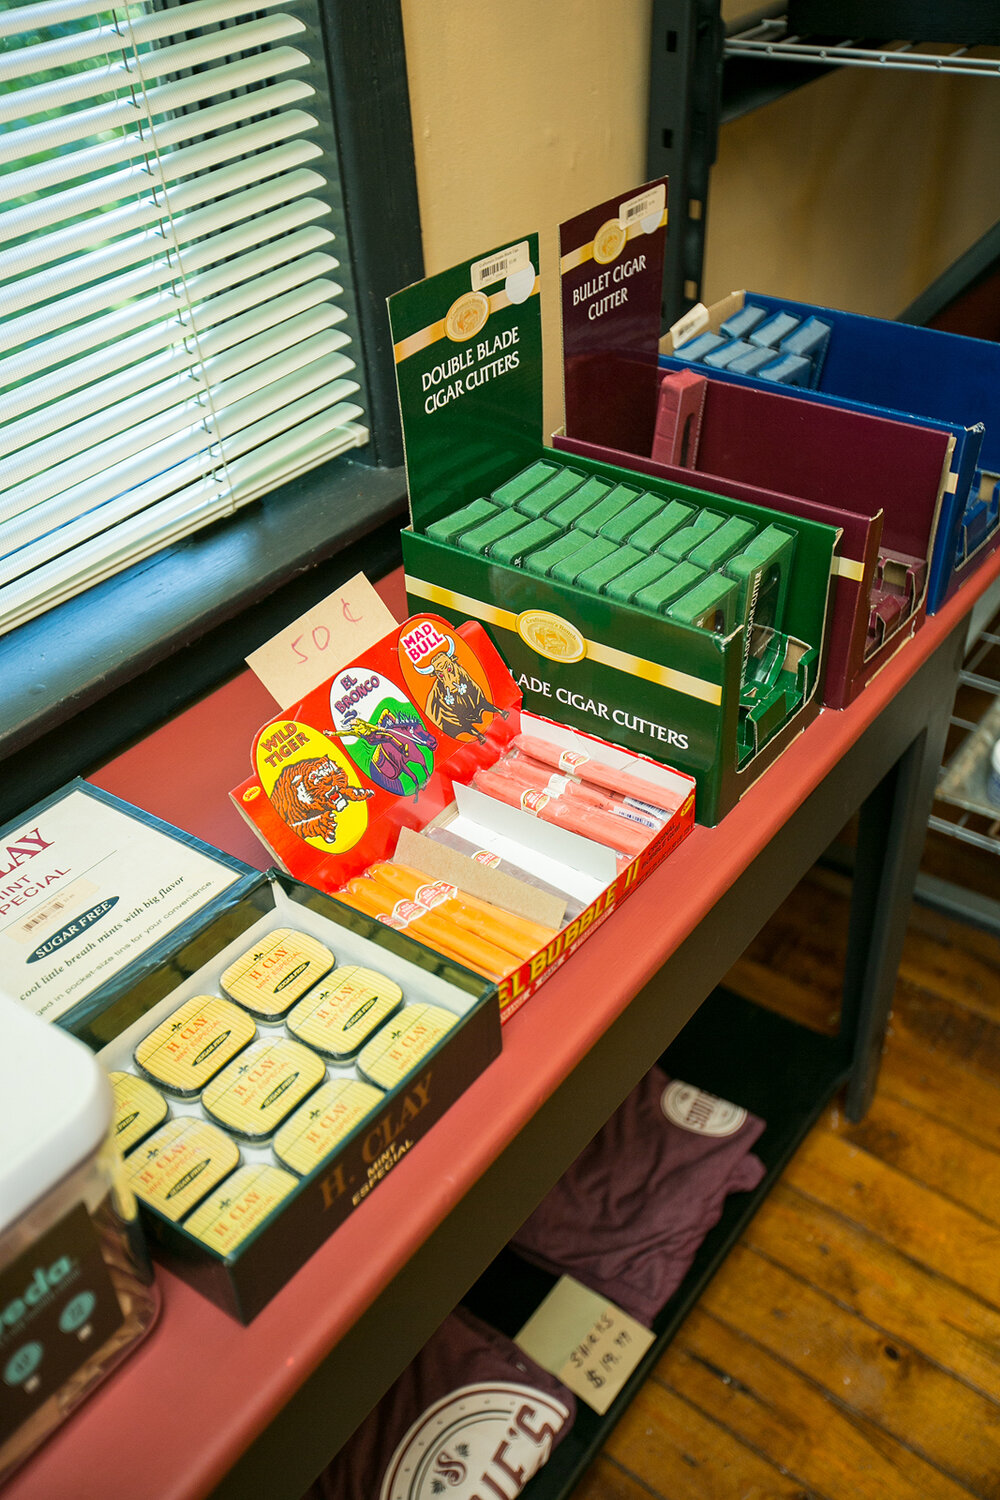 Mints, Cutters, Candy cigars. Photo by Kristina Marshall.